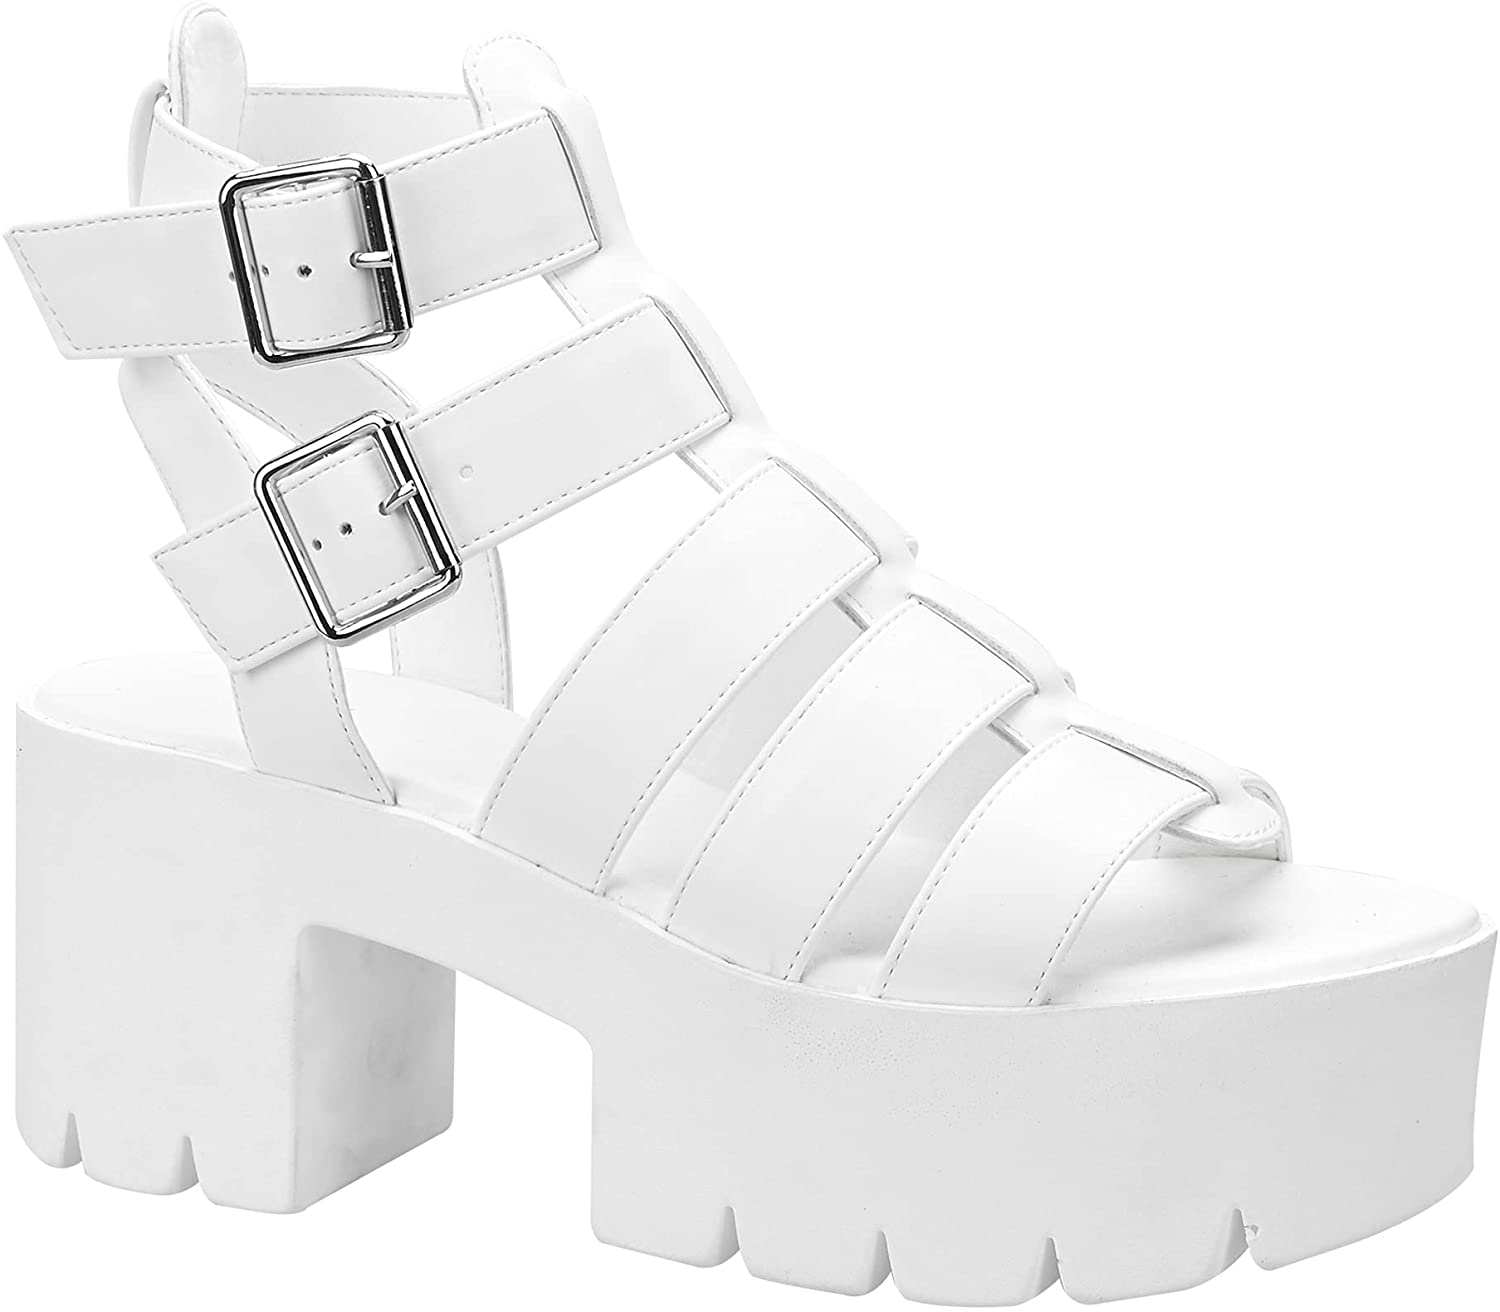 READYSALTED Faux Leather Limited time for free shipping Multi Ranking TOP1 Buckle Ankle Strap Gladi Flatform